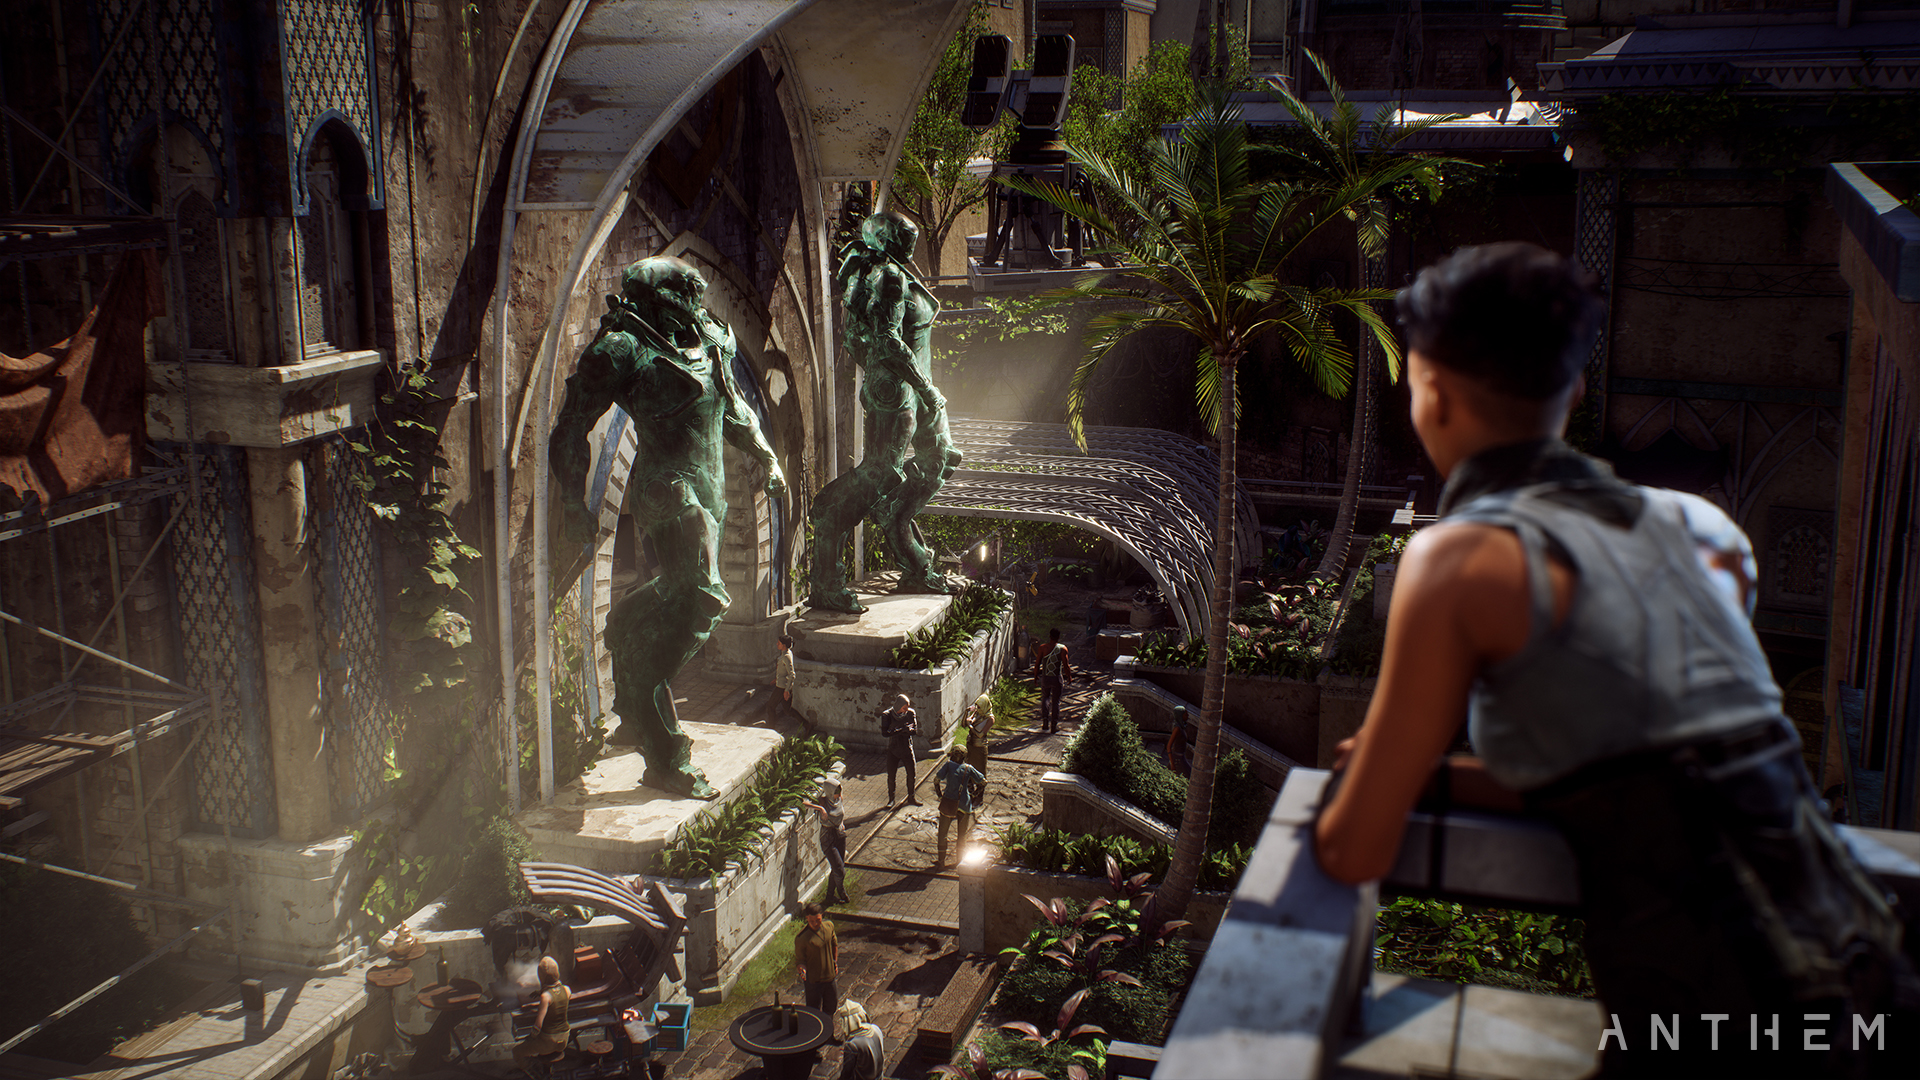 Anthem won't allow trading between players when it ...